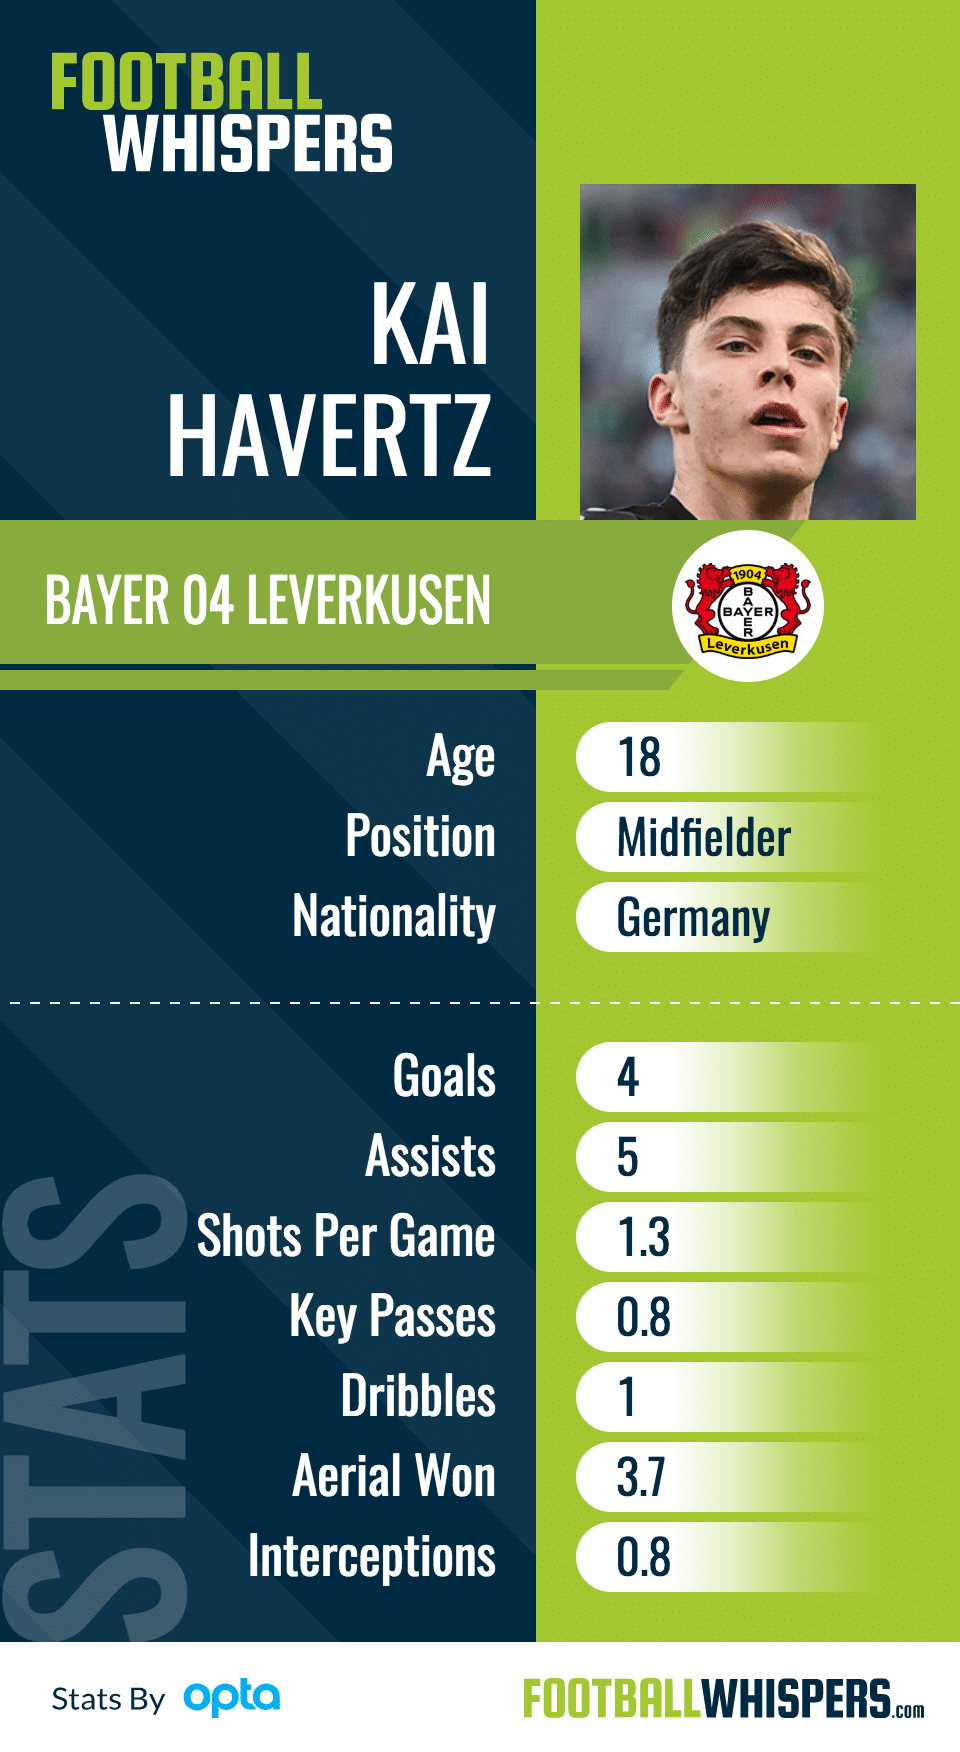 Who Are Liverpool Targets Henrichs And Havertz?